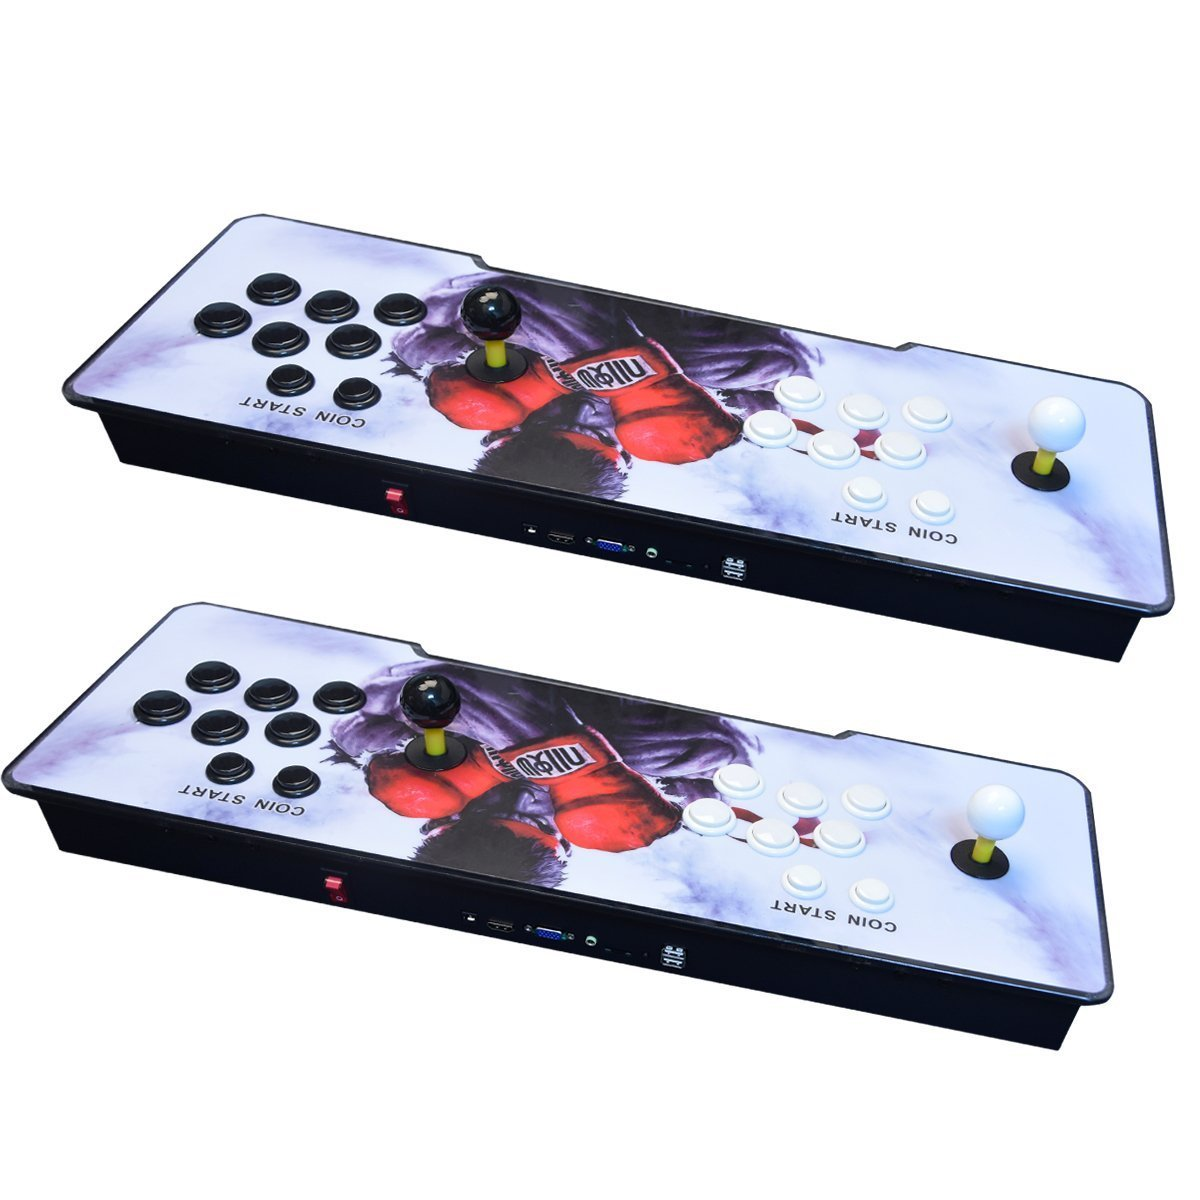 【2400 Games in 1】 Arcade Game Console Ultra Slim Metal Double Stick 2400 Classic Arcade Game Machine 2 Players Pandoras Box 6S 1280X720 Full HD Video Game Console for Computer & Projector & TV by TanDer (Image #5)